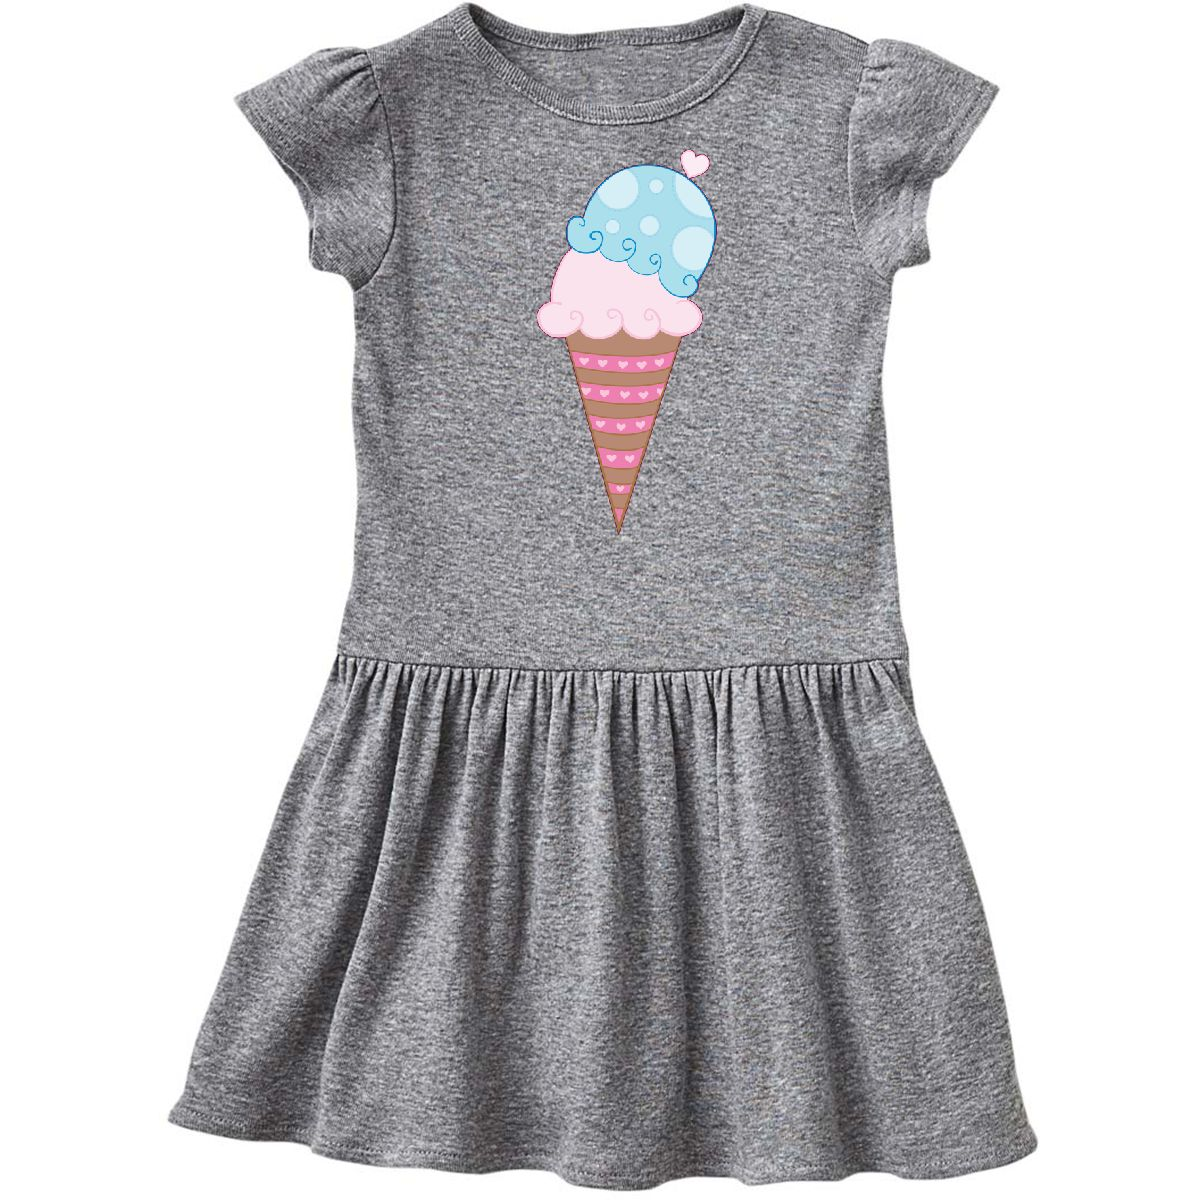 Wandboard Nussbaum Day Cream Ice Scoops Sweet Ice Dress Hearts Cone Day Love